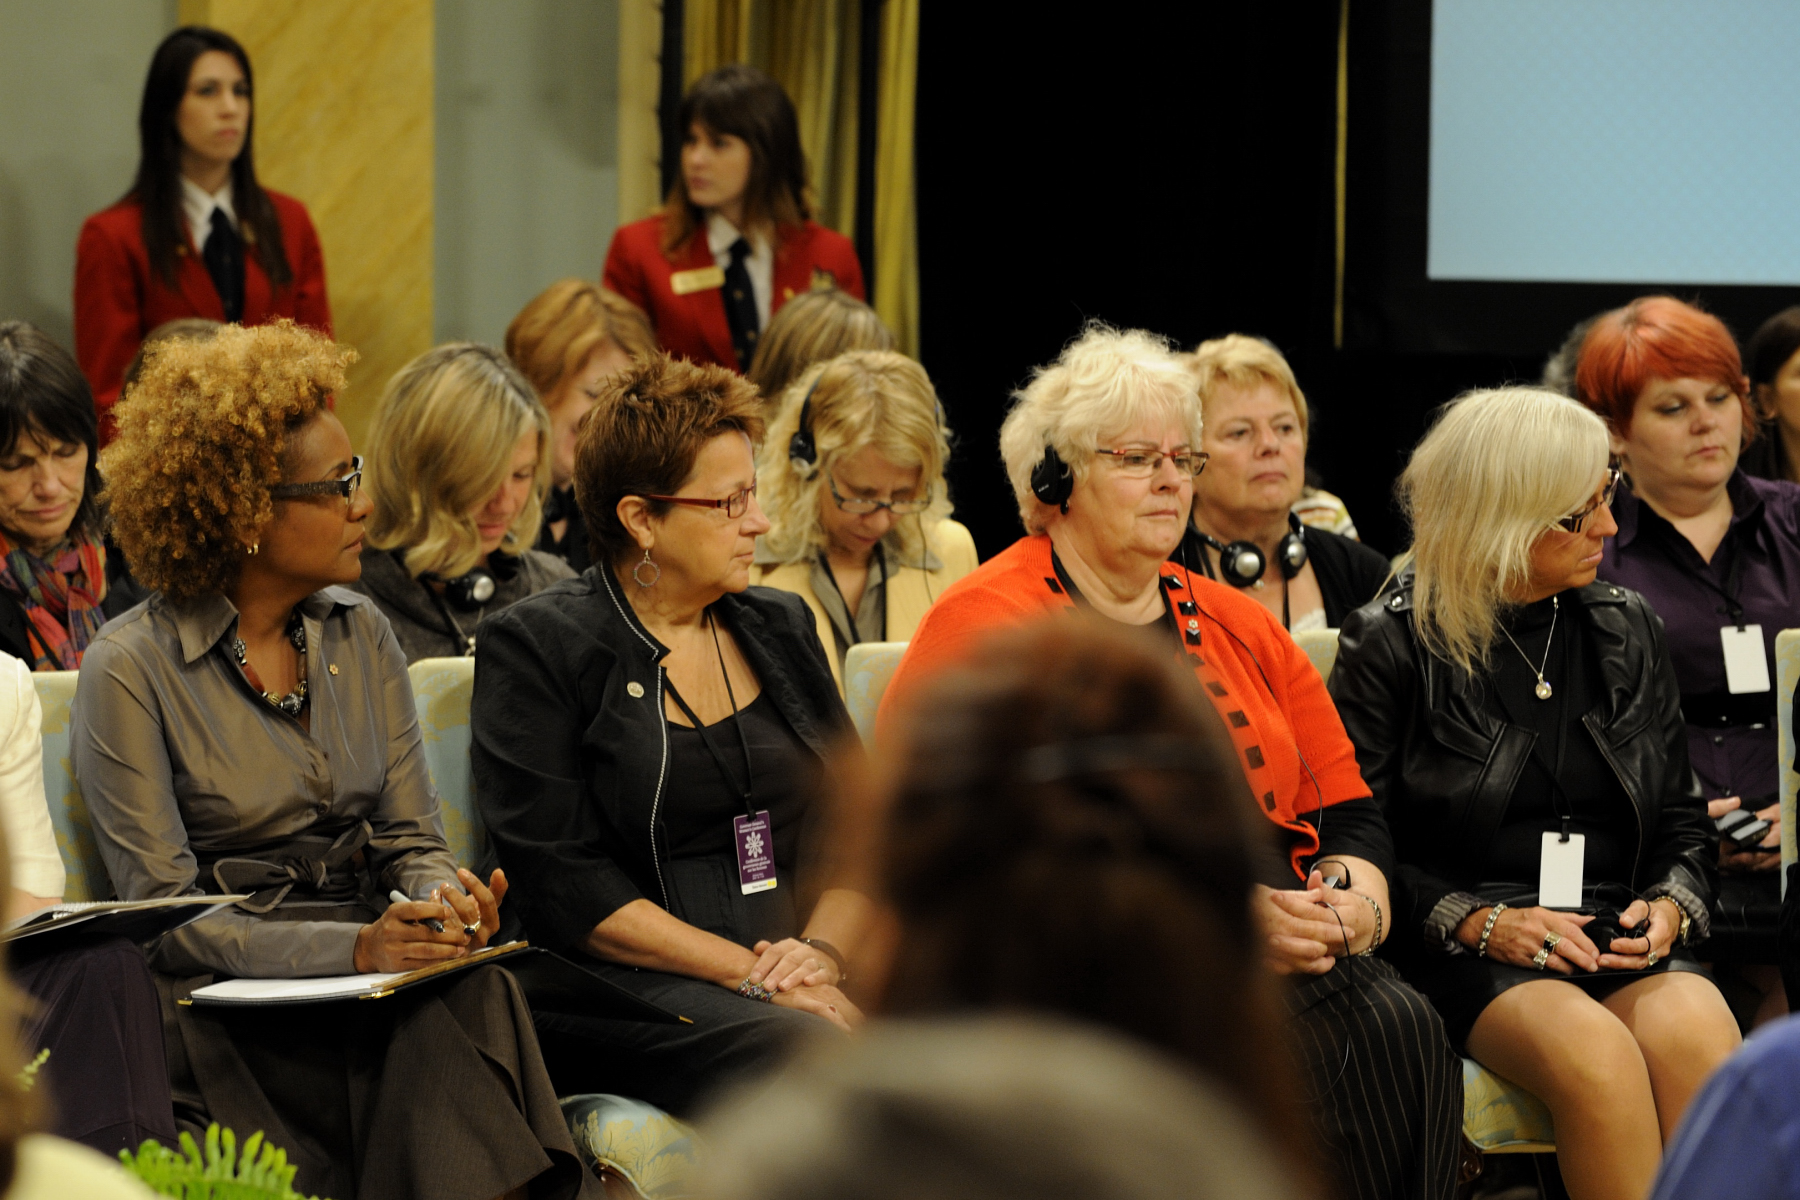 "The conference ""Together for Women's Security"" gathered at Rideau Hall women and men from all provinces and territories. Throughout her mandate, the Governor General was determined to break down the wall of indifference by giving a voice to women. Therefore, she made it a priority to meet and engage with women during her visits throughout the country and abroad."